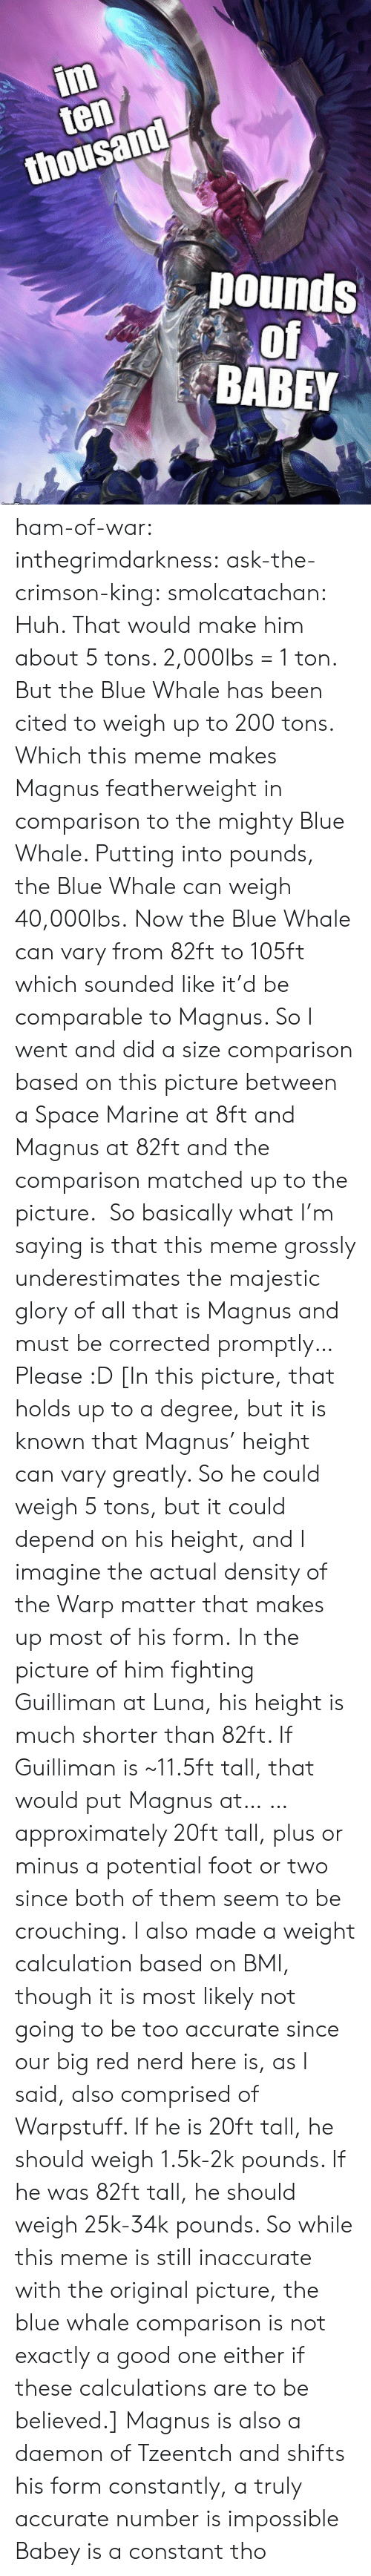 mammals: im  ten  thousand  pounds  of  BABEY ham-of-war: inthegrimdarkness:   ask-the-crimson-king:   smolcatachan:  Huh. That would make him about 5 tons. 2,000lbs = 1 ton. But the Blue Whale has been cited to weigh up to 200 tons. Which this meme makes Magnus featherweight in comparison to the mighty Blue Whale. Putting into pounds, the Blue Whale can weigh 40,000lbs. Now the Blue Whale can vary from 82ft to 105ft which sounded like it'd be comparable to Magnus. So I went and did a size comparison based on this picture between a Space Marine at 8ft and Magnus at 82ft and the comparison matched up to the picture.  So basically what I'm saying is that this meme grossly underestimates the majestic glory of all that is Magnus and must be corrected promptly…Please :D  [In this picture, that holds up to a degree, but it is known that Magnus' height can vary greatly. So he could weigh 5 tons, but it could depend on his height, and I imagine the actual density of the Warp matter that makes up most of his form. In the picture of him fighting Guilliman at Luna, his height is much shorter than 82ft. If Guilliman is ~11.5ft tall, that would put Magnus at… … approximately 20ft tall, plus or minus a potential foot or two since both of them seem to be crouching. I also made a weight calculation based on BMI, though it is most likely not going to be too accurate since our big red nerd here is, as I said, also comprised of Warpstuff. If he is 20ft tall, he should weigh 1.5k-2k pounds. If he was 82ft tall, he should weigh 25k-34k pounds. So while this meme is still inaccurate with the original picture, the blue whale comparison is not exactly a good one either if these calculations are to be believed.]   Magnus is also a daemon of Tzeentch and shifts his form constantly, a truly accurate number is impossible    Babey is a constant tho